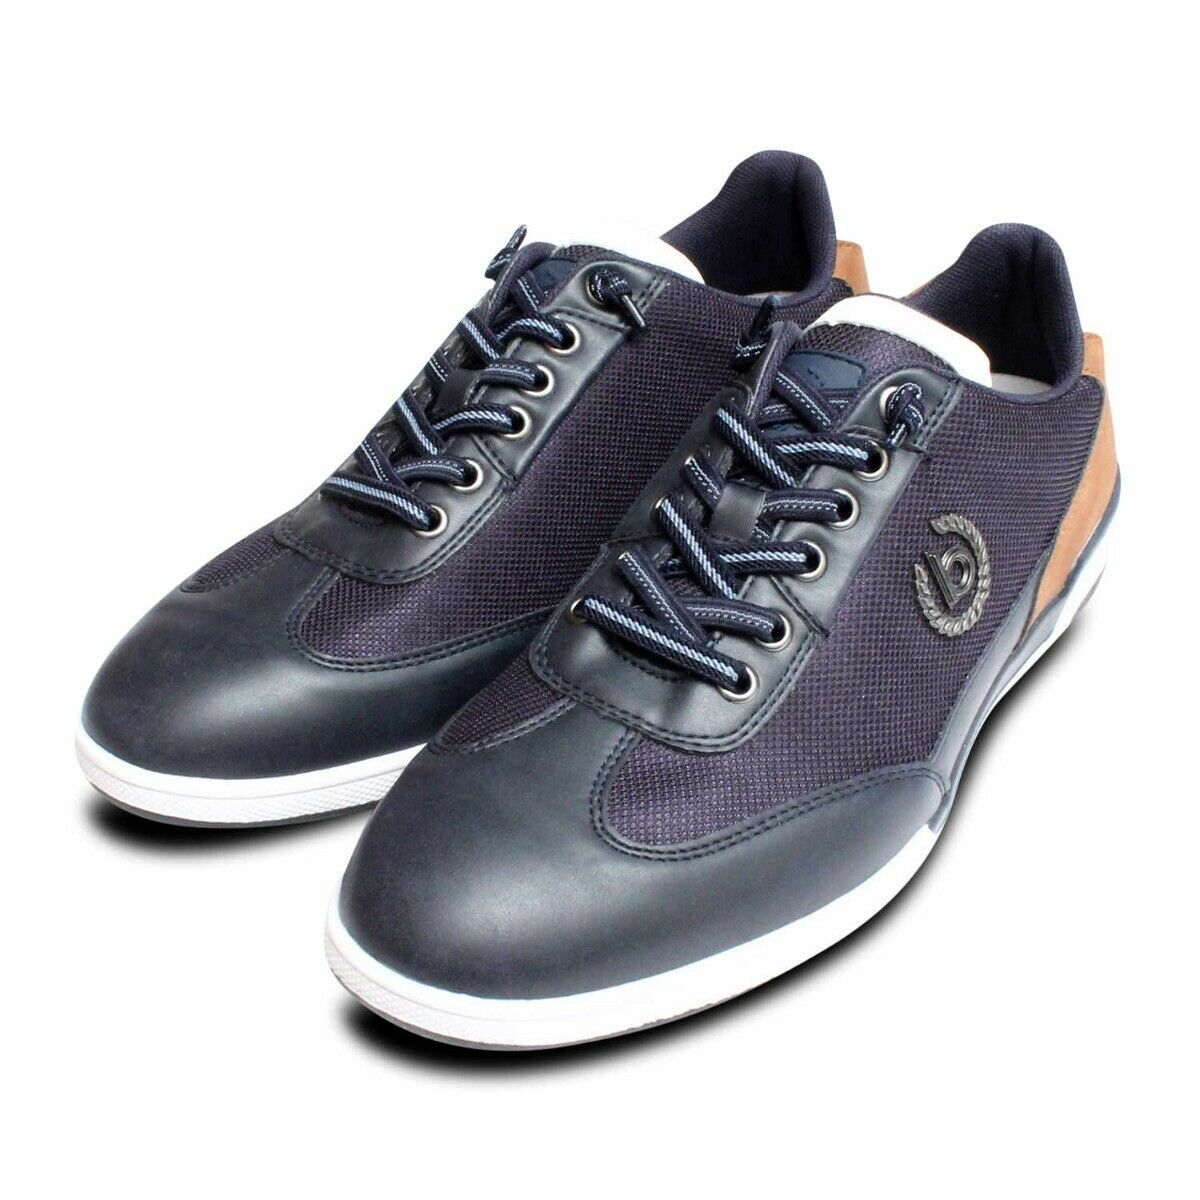 Bugatti Designer Navy Blue Trainers with Tan Suede